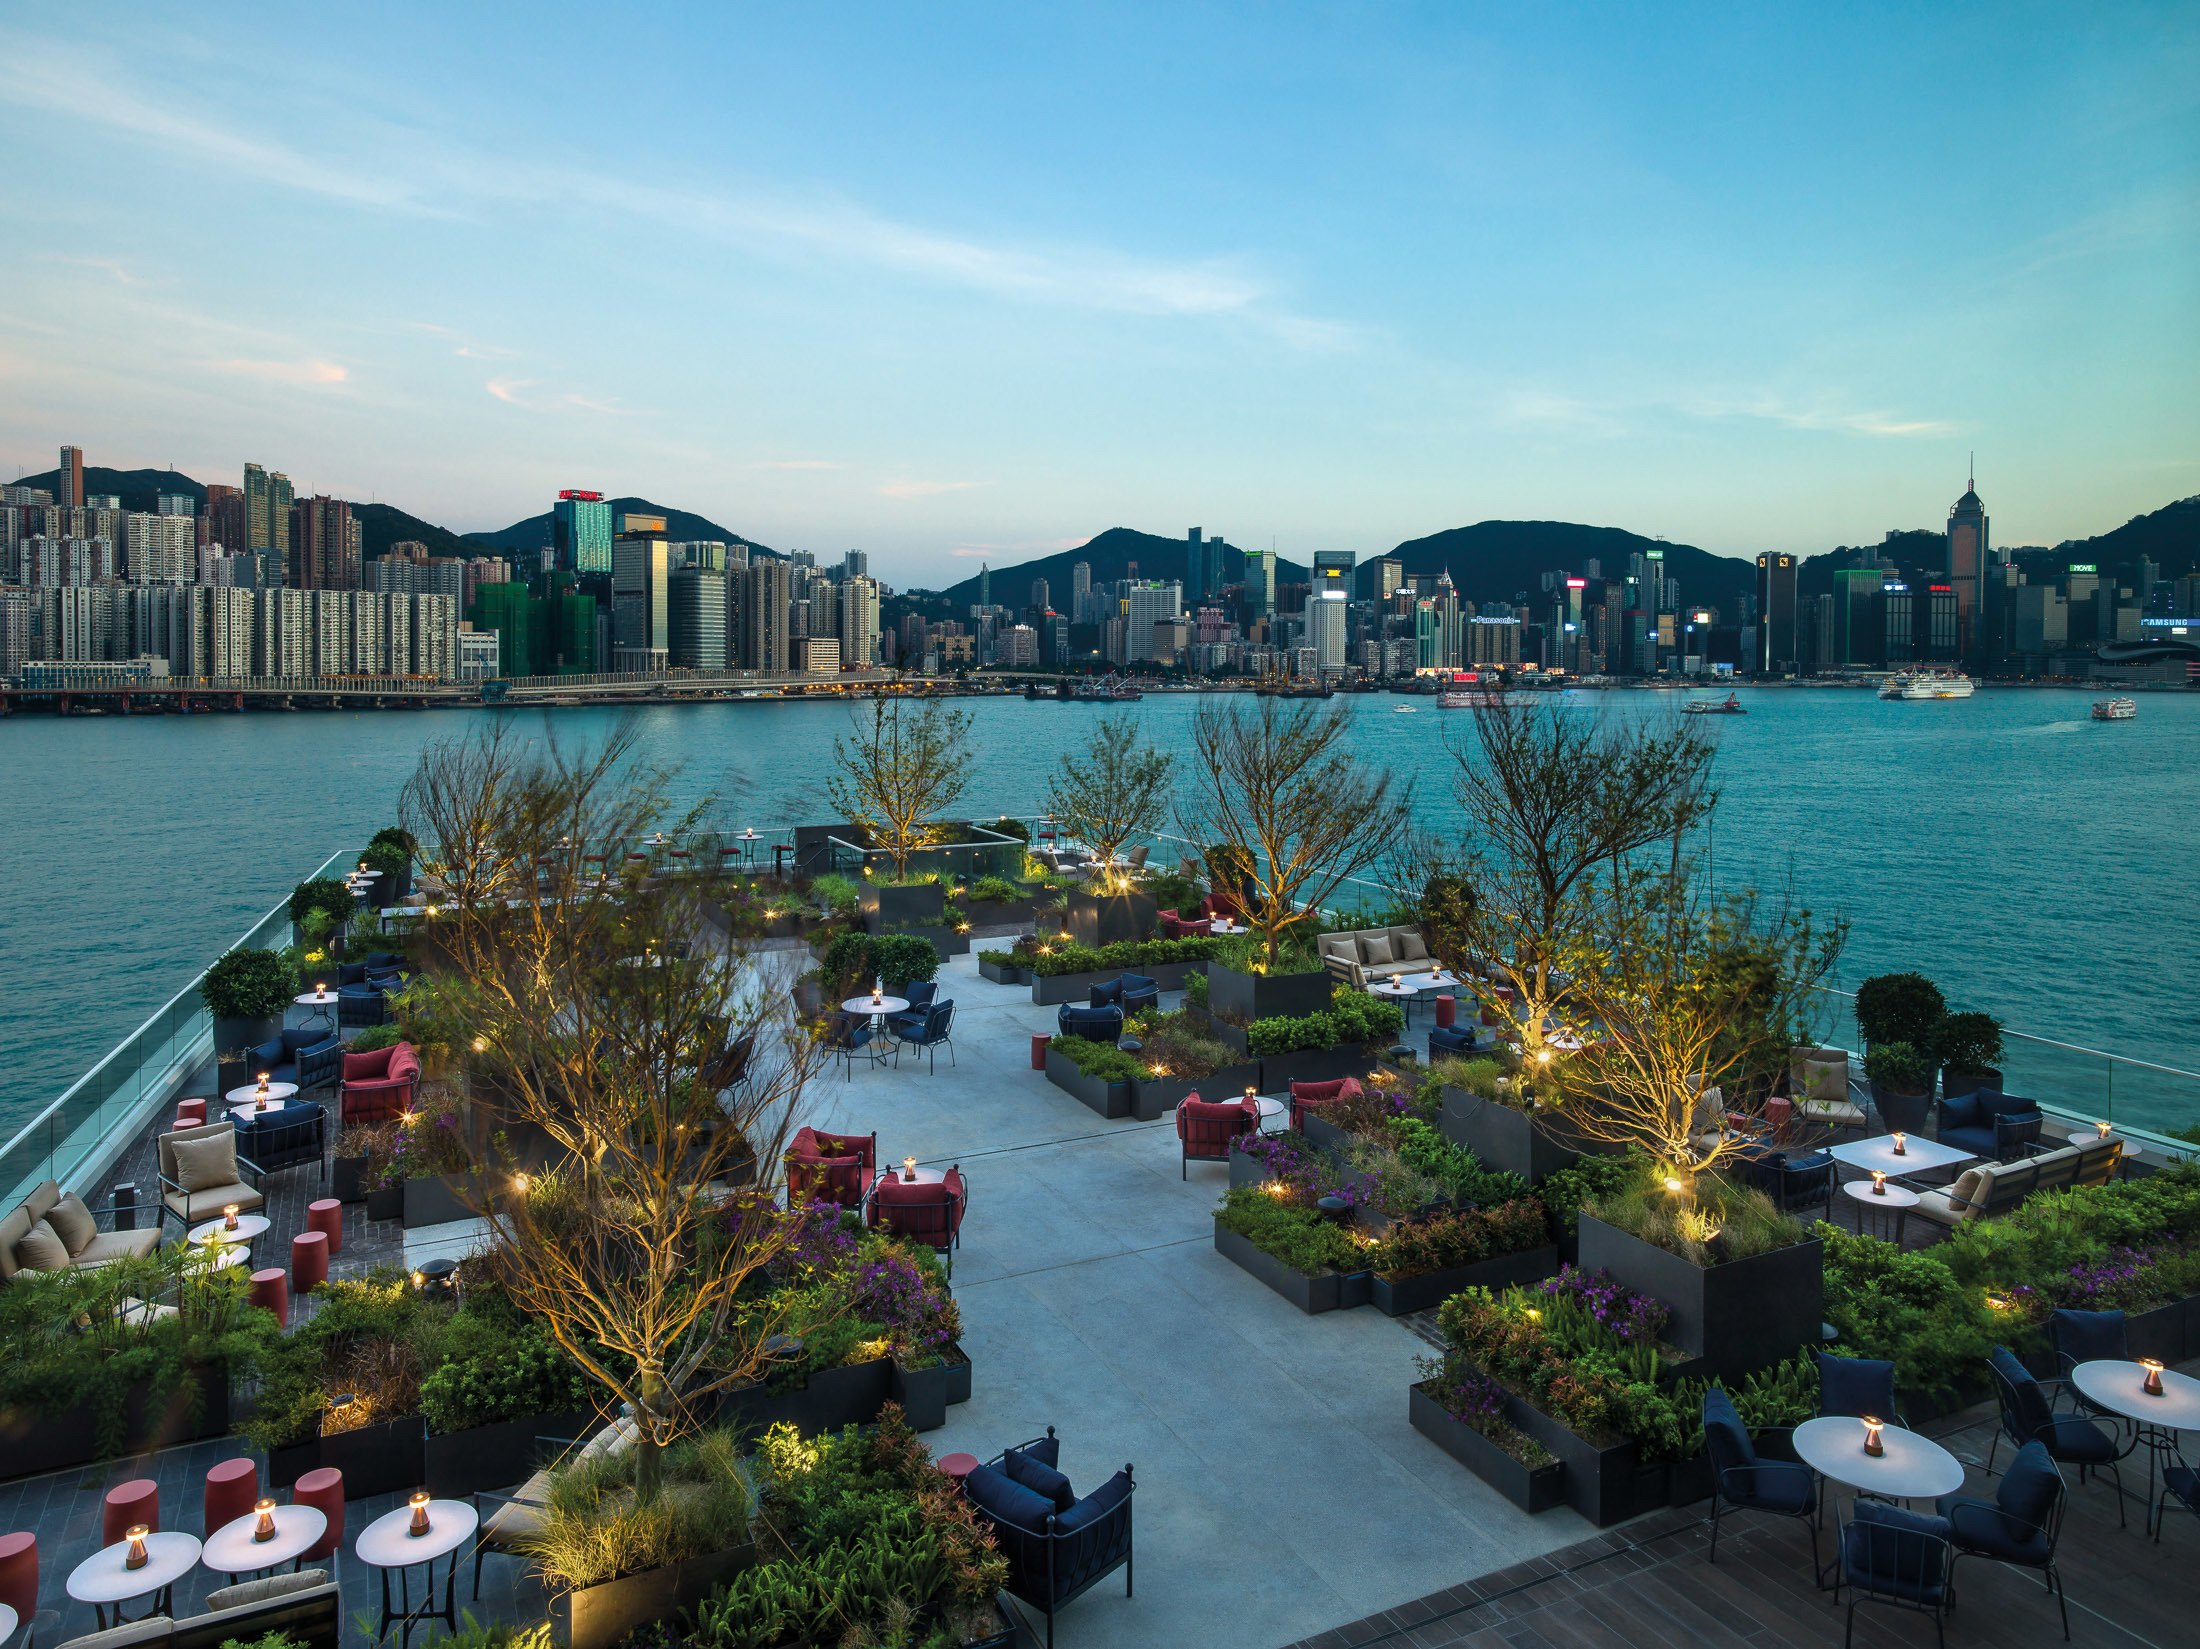 Red Sugar Terrace for drinks and food at Kerry Hotel Hong Kong.